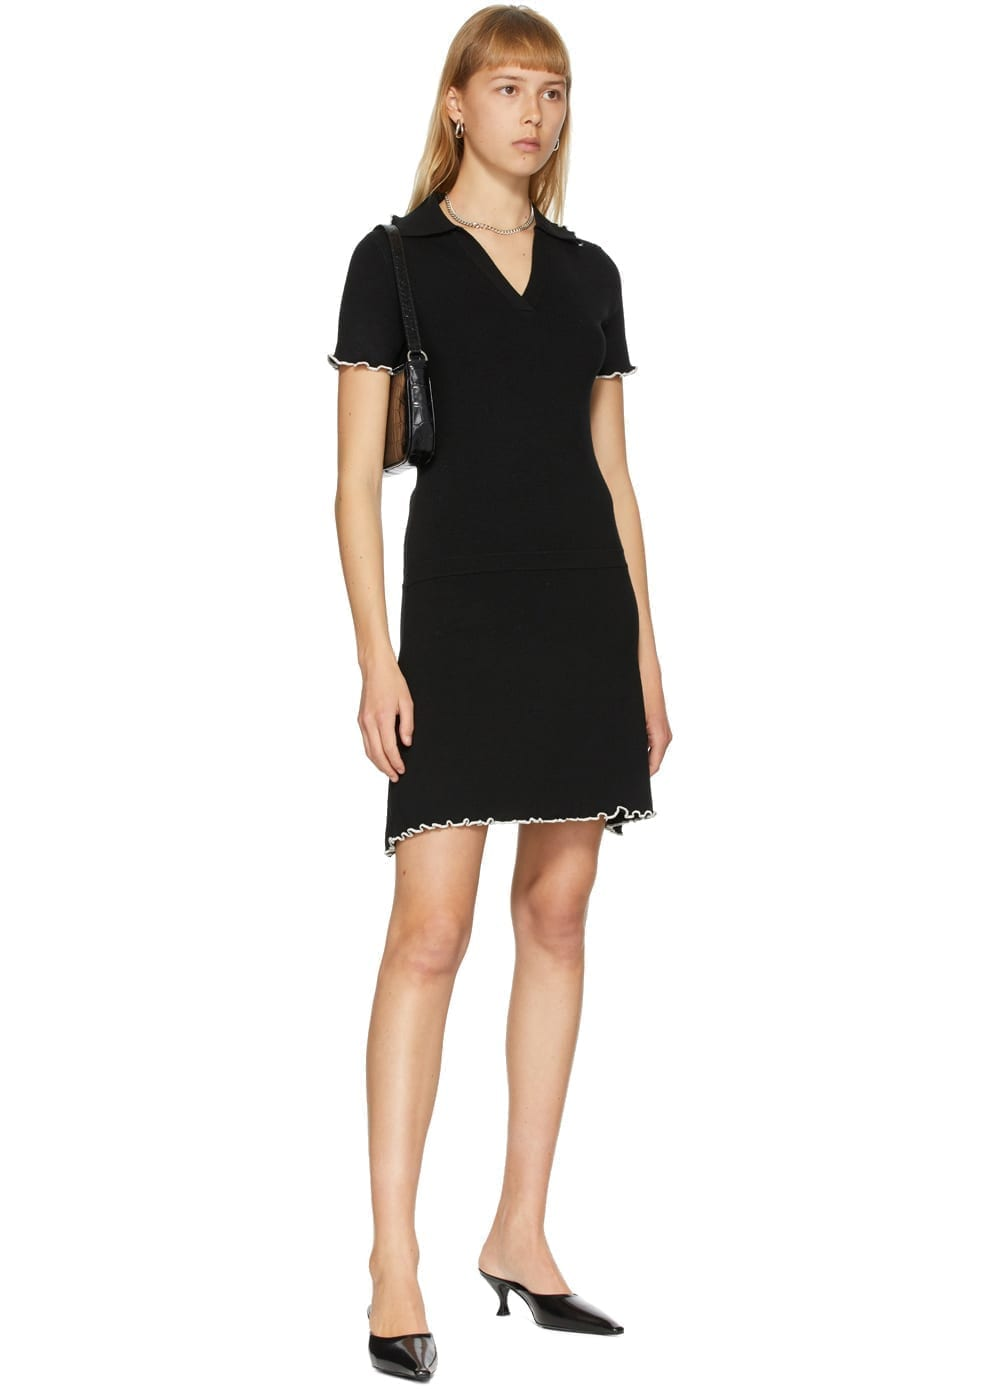 VICTOR GLEMAUD Black Polo Dress